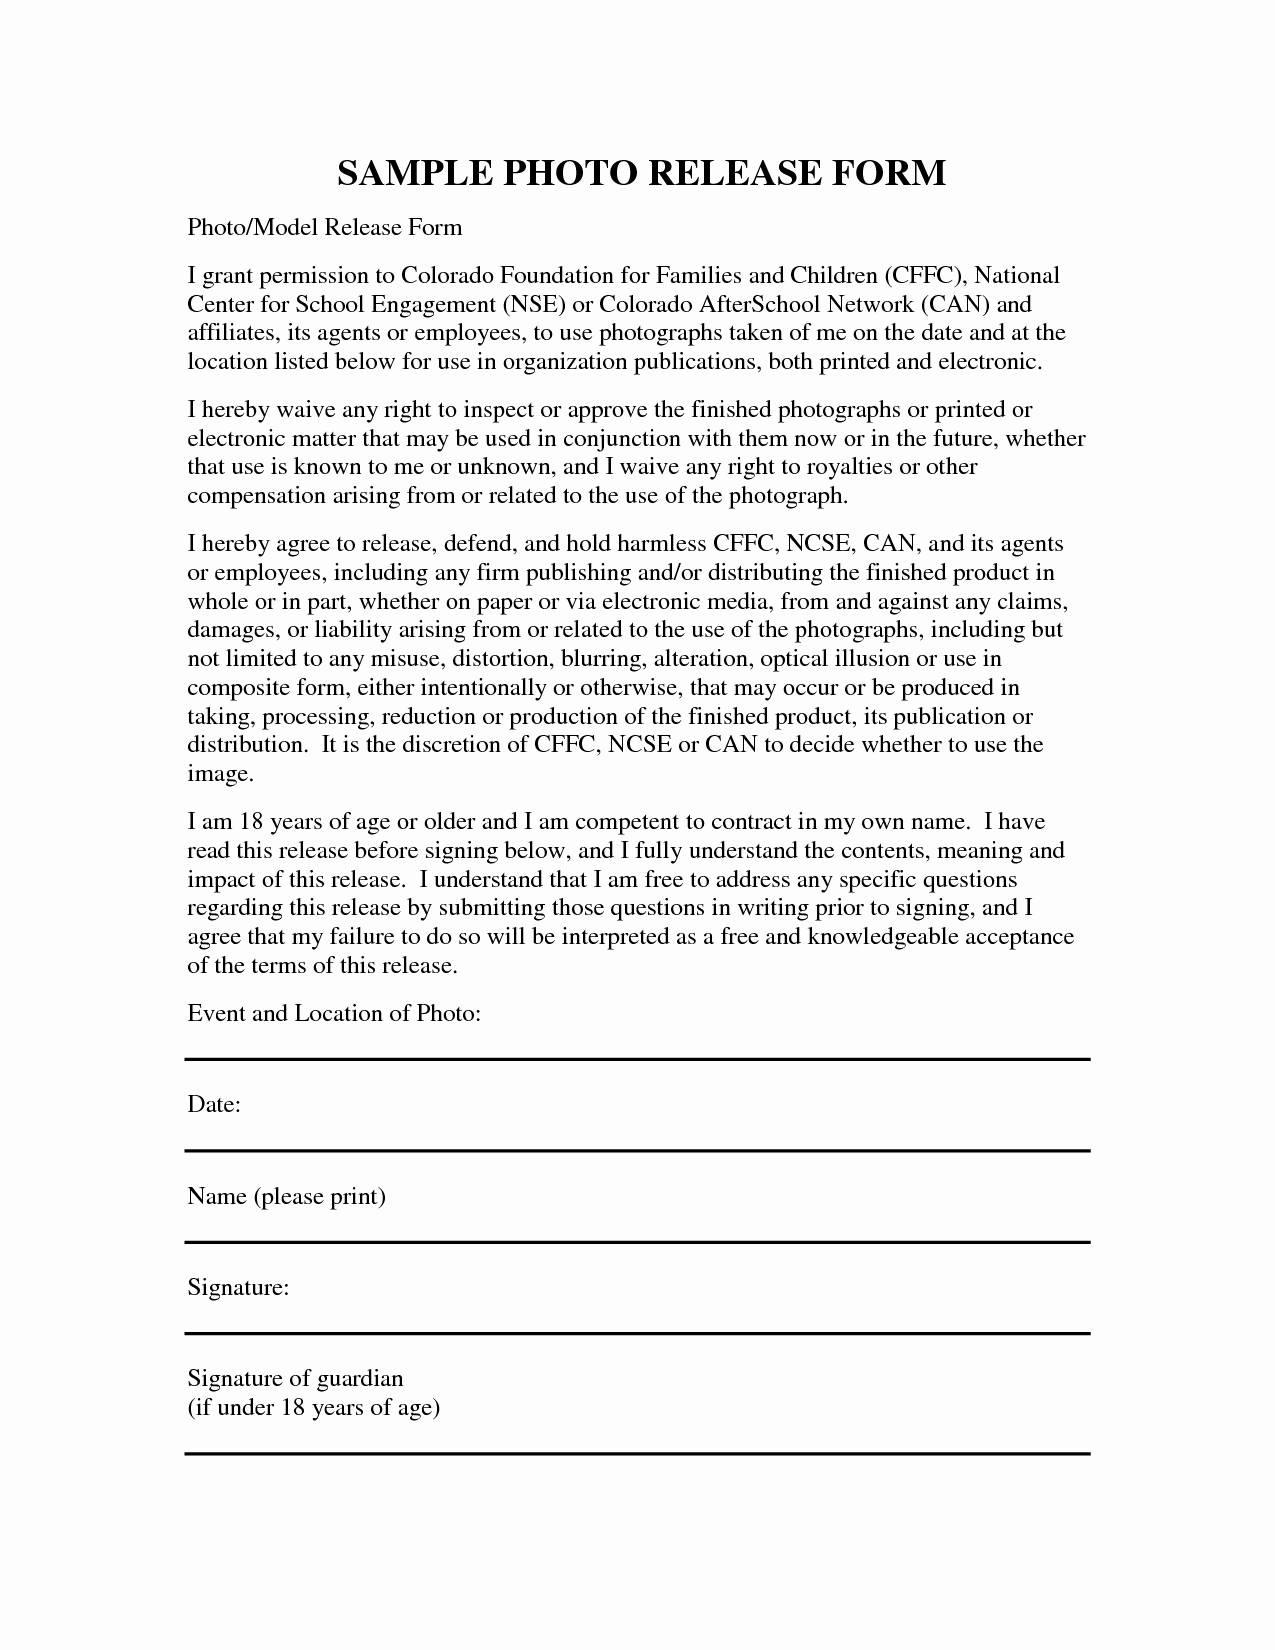 Hipaa Letter Medical Collection Template - Elegant Hipaa Release form Template